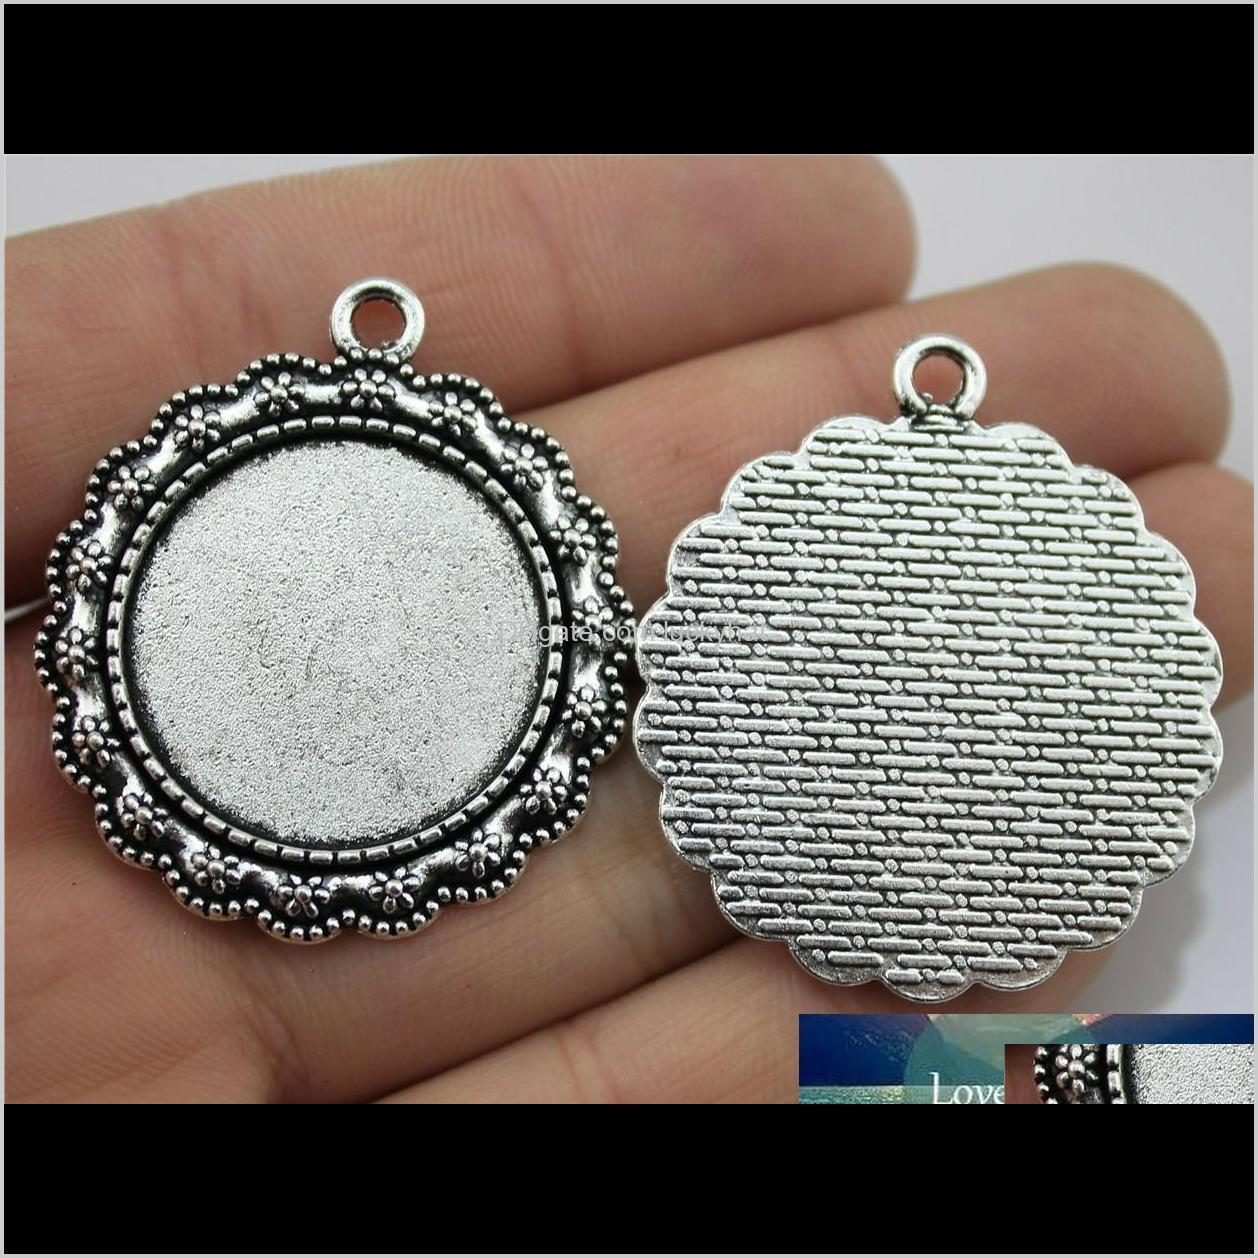 8 pieces cabochon cameo base tray bezel blank diy accessories for flower single side inner size 25mm round flatback resin cabochons